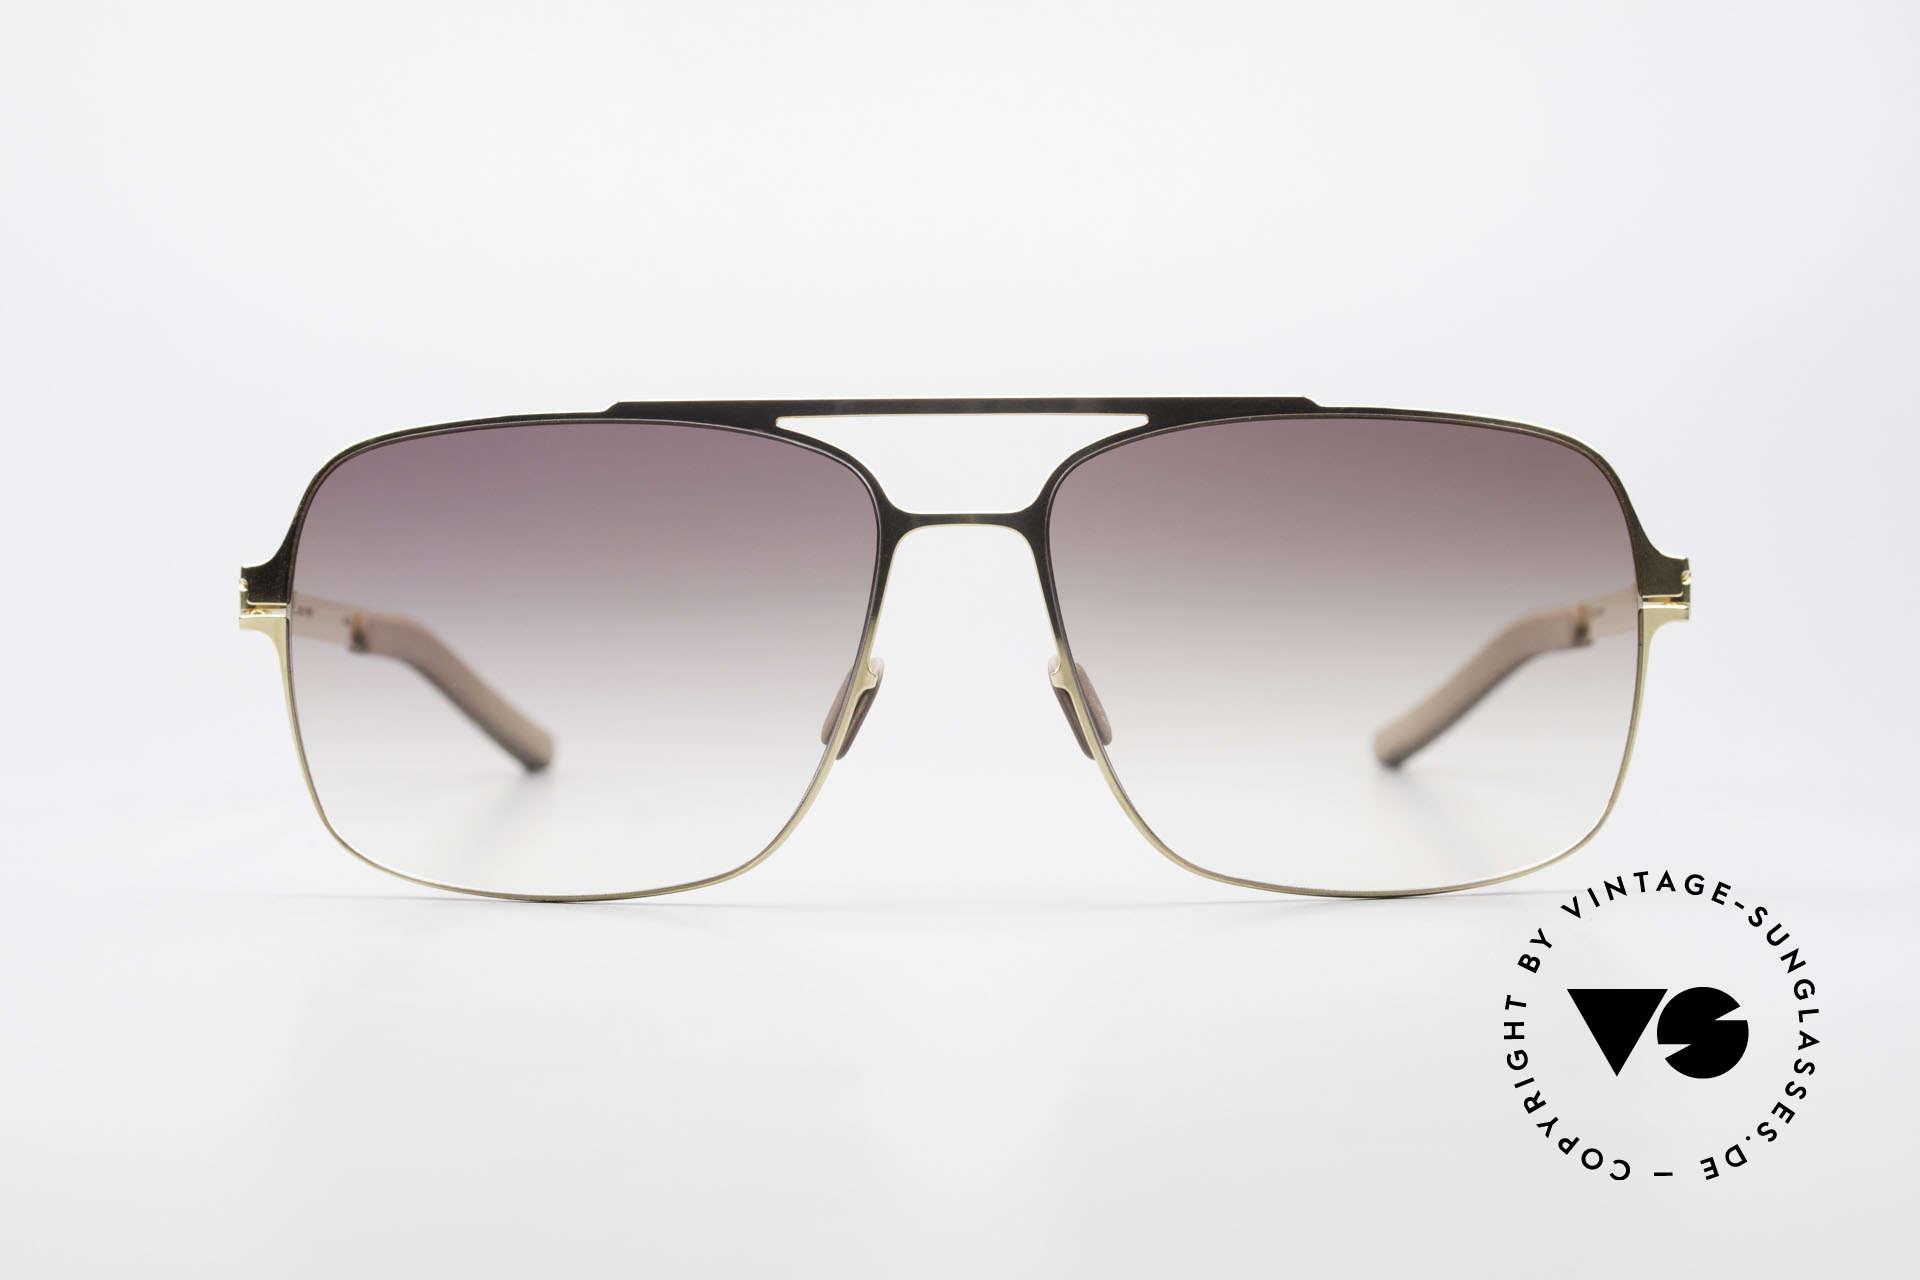 Mykita Troy Mykita Collection No 1 Shades, MYKITA: the youngest brand in our vintage collection, Made for Men